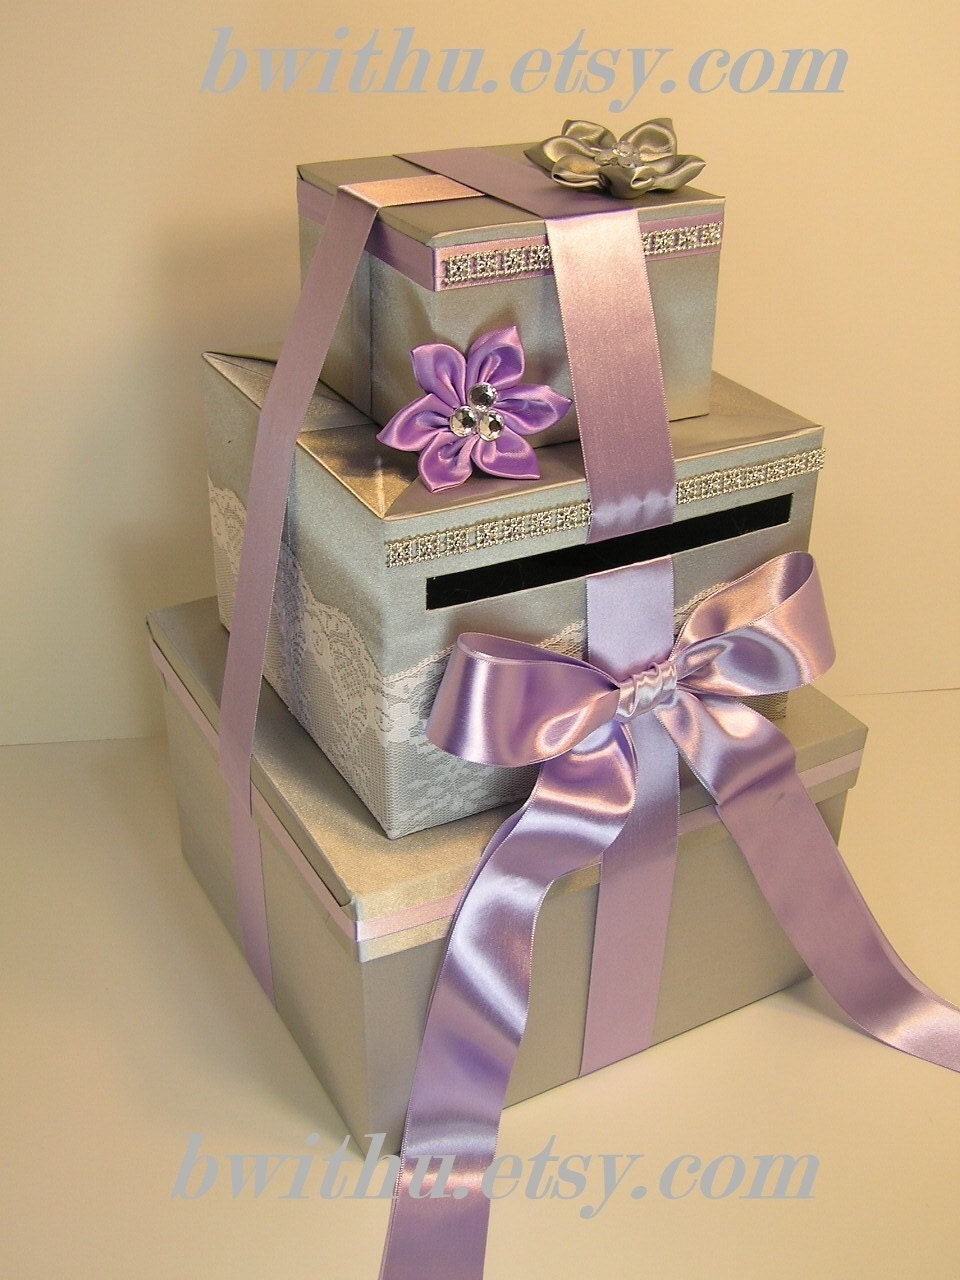 Wedding Gift Box Etsy : Wedding Card Box Gift Card Box Money Box HolderCustomize